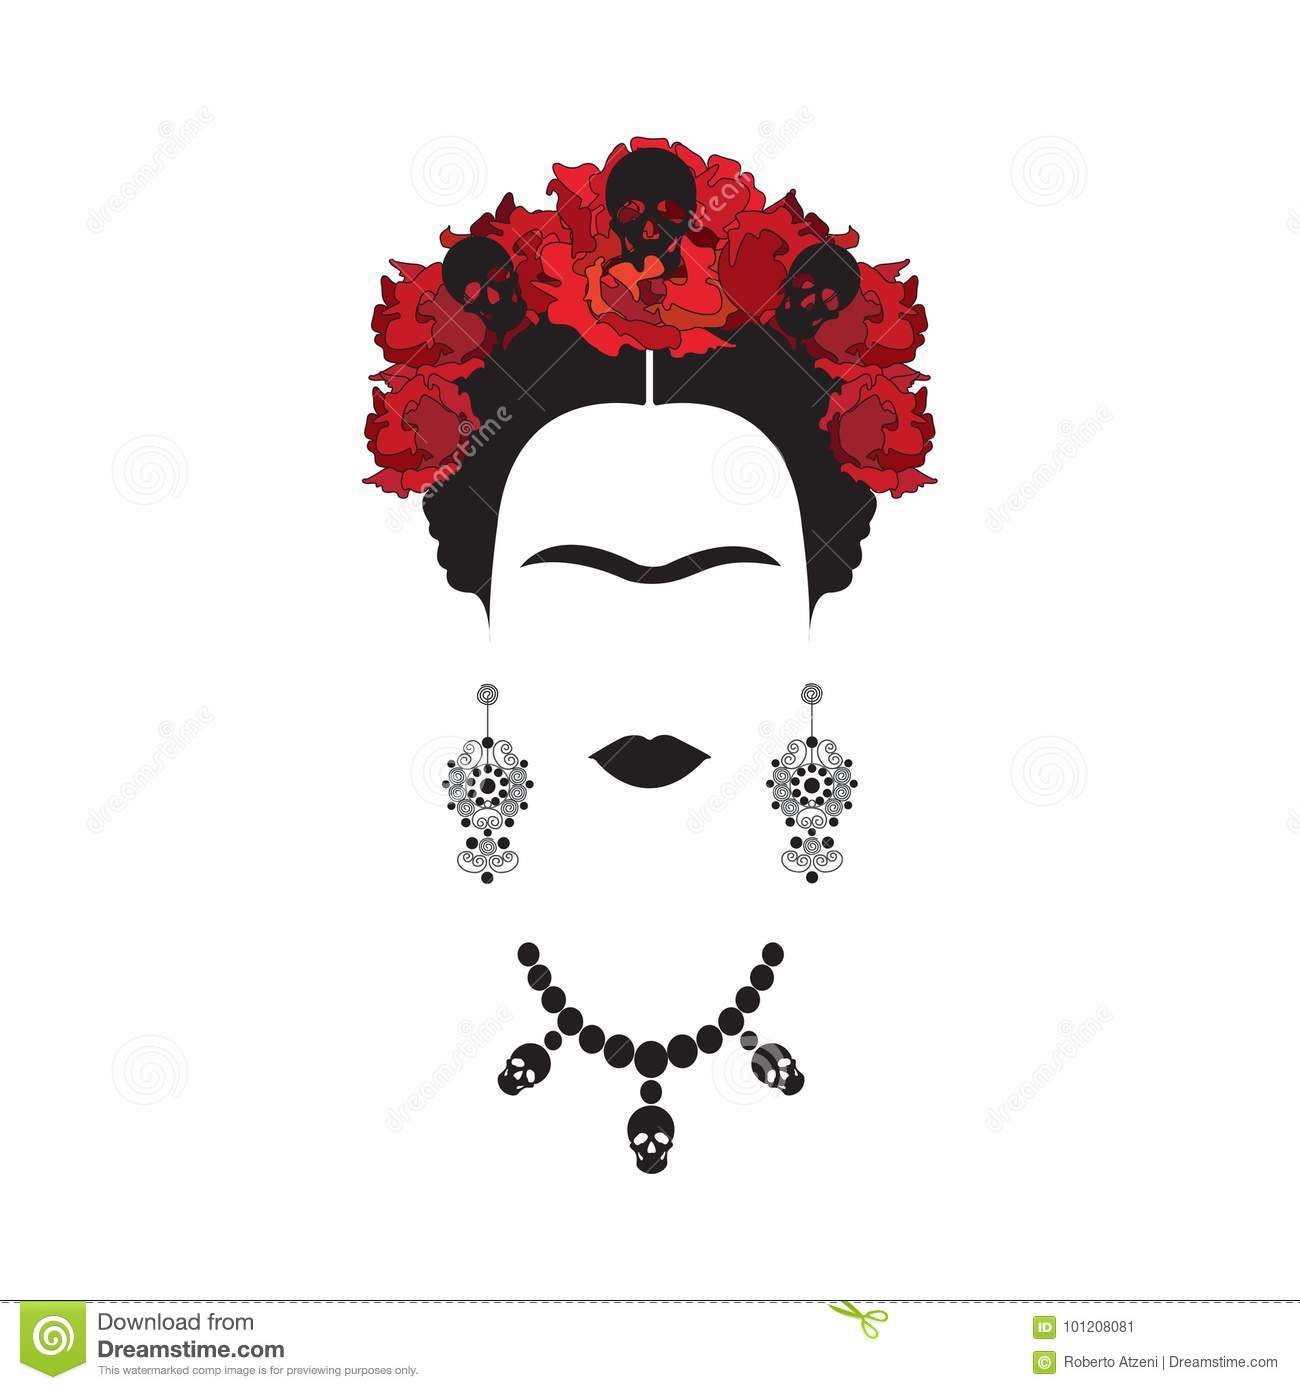 Portrait of Frida Kahlo minimalist Mexican woman with skulls of earrings and red flowers, Mexican Catrina, isolated